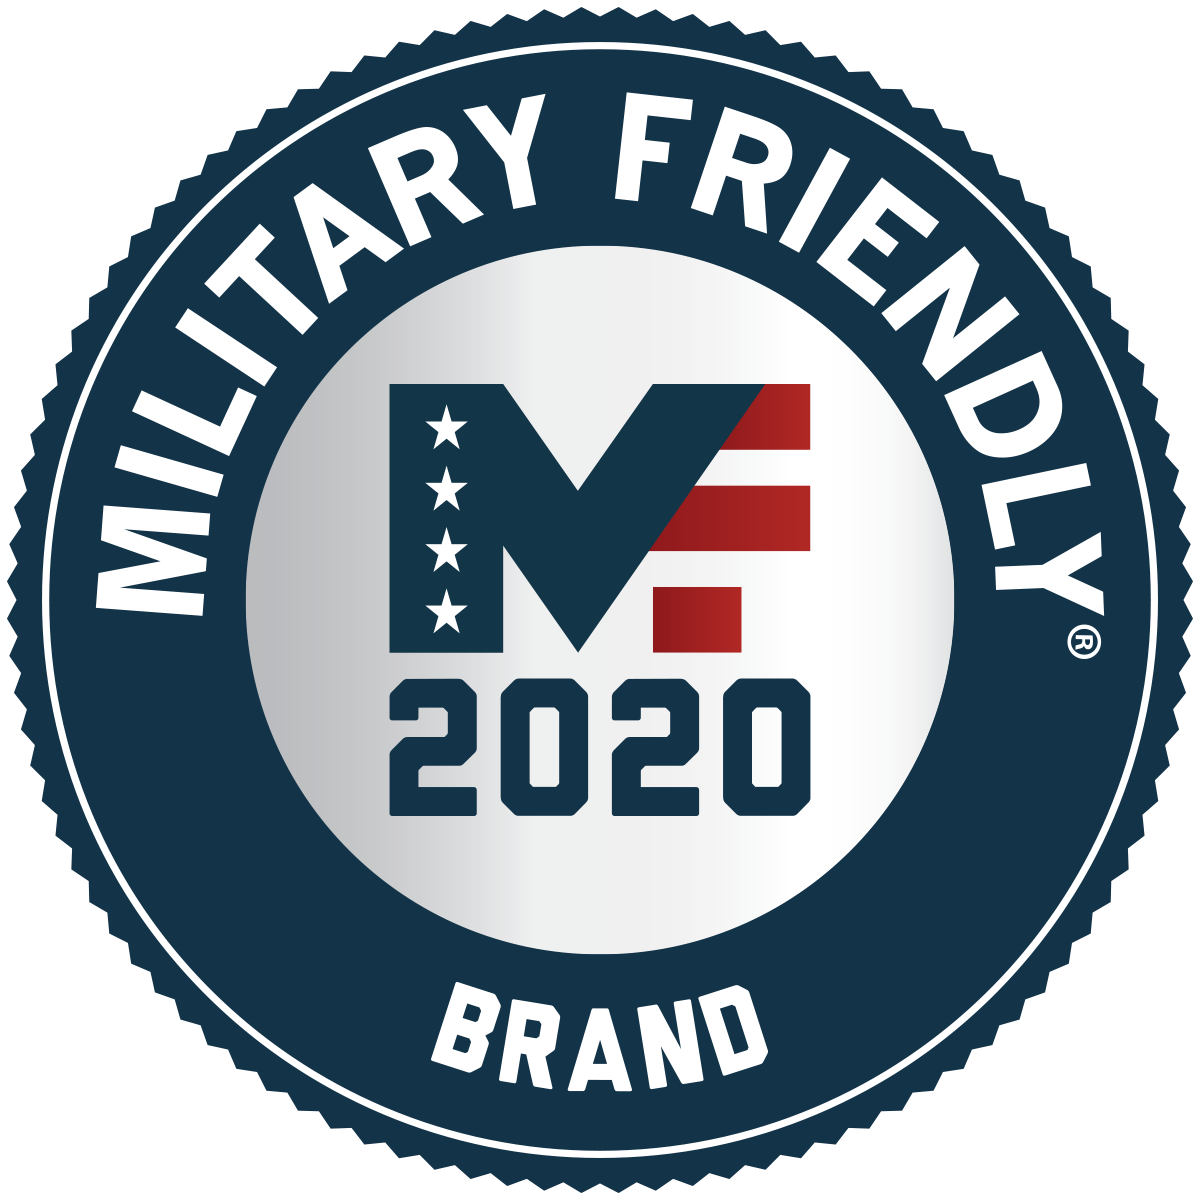 Military Friendly Brand - MF'19 Award